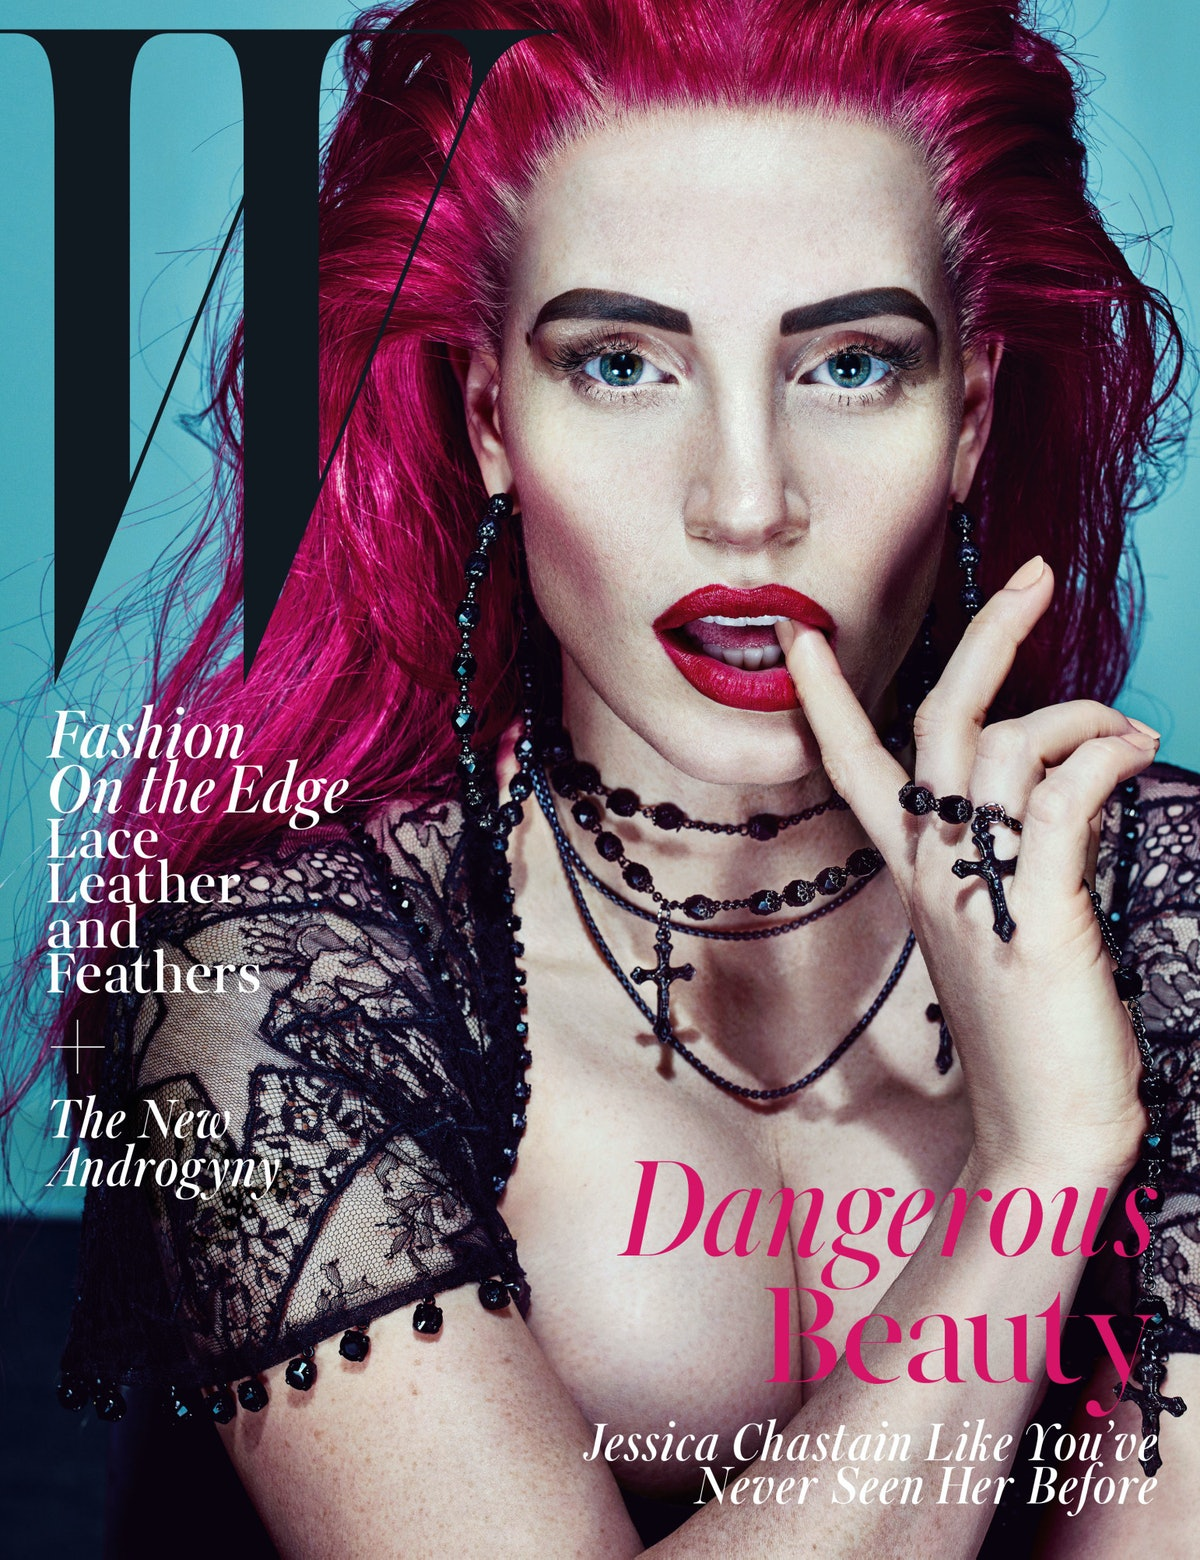 jessica-chastain-cover.jpg